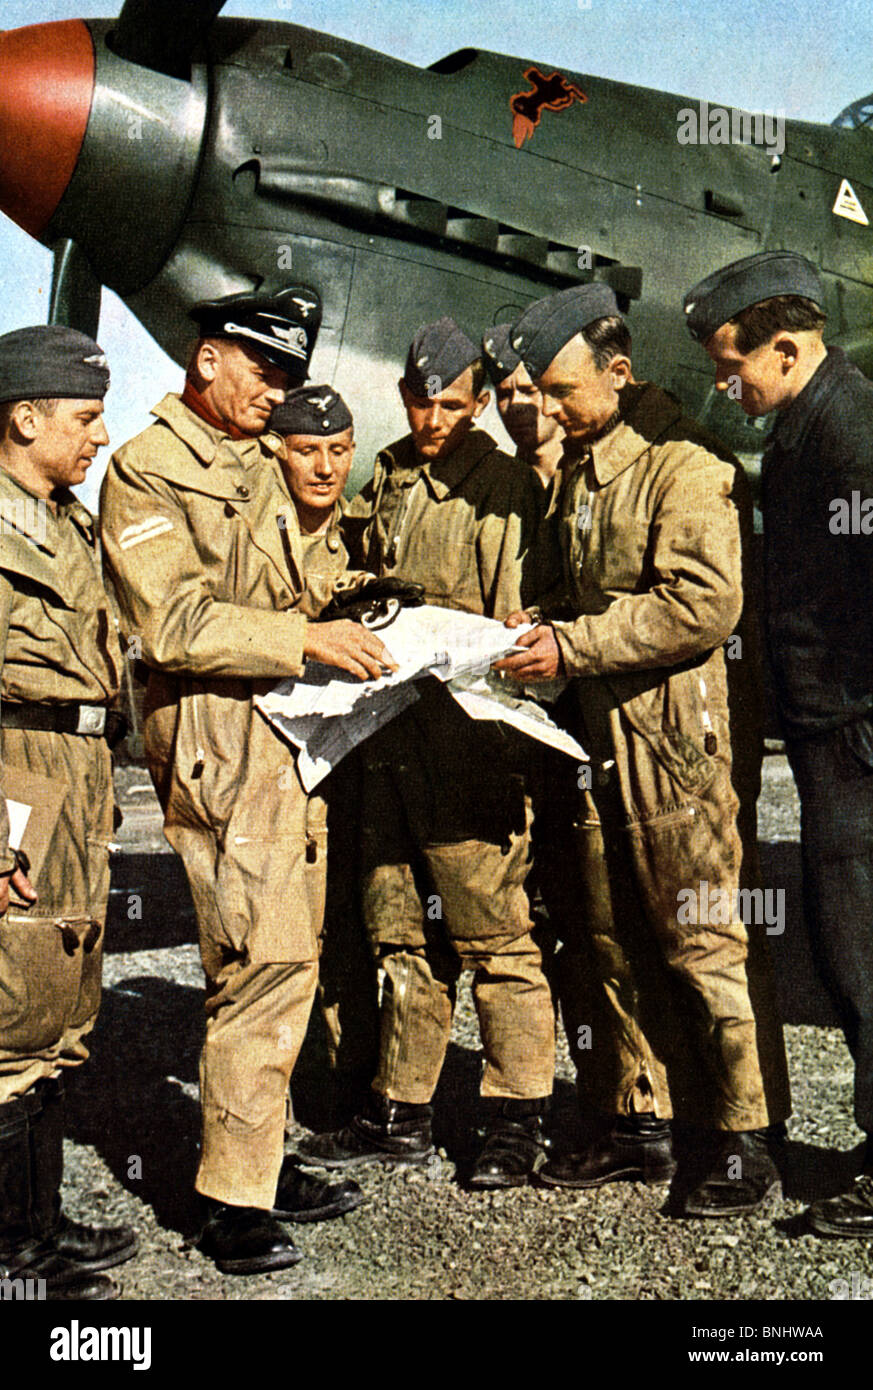 World War II Nazi Germany against England Britain Luftwaffe pilot fighter aircraft meeting pilots map aeroplane - Stock Image